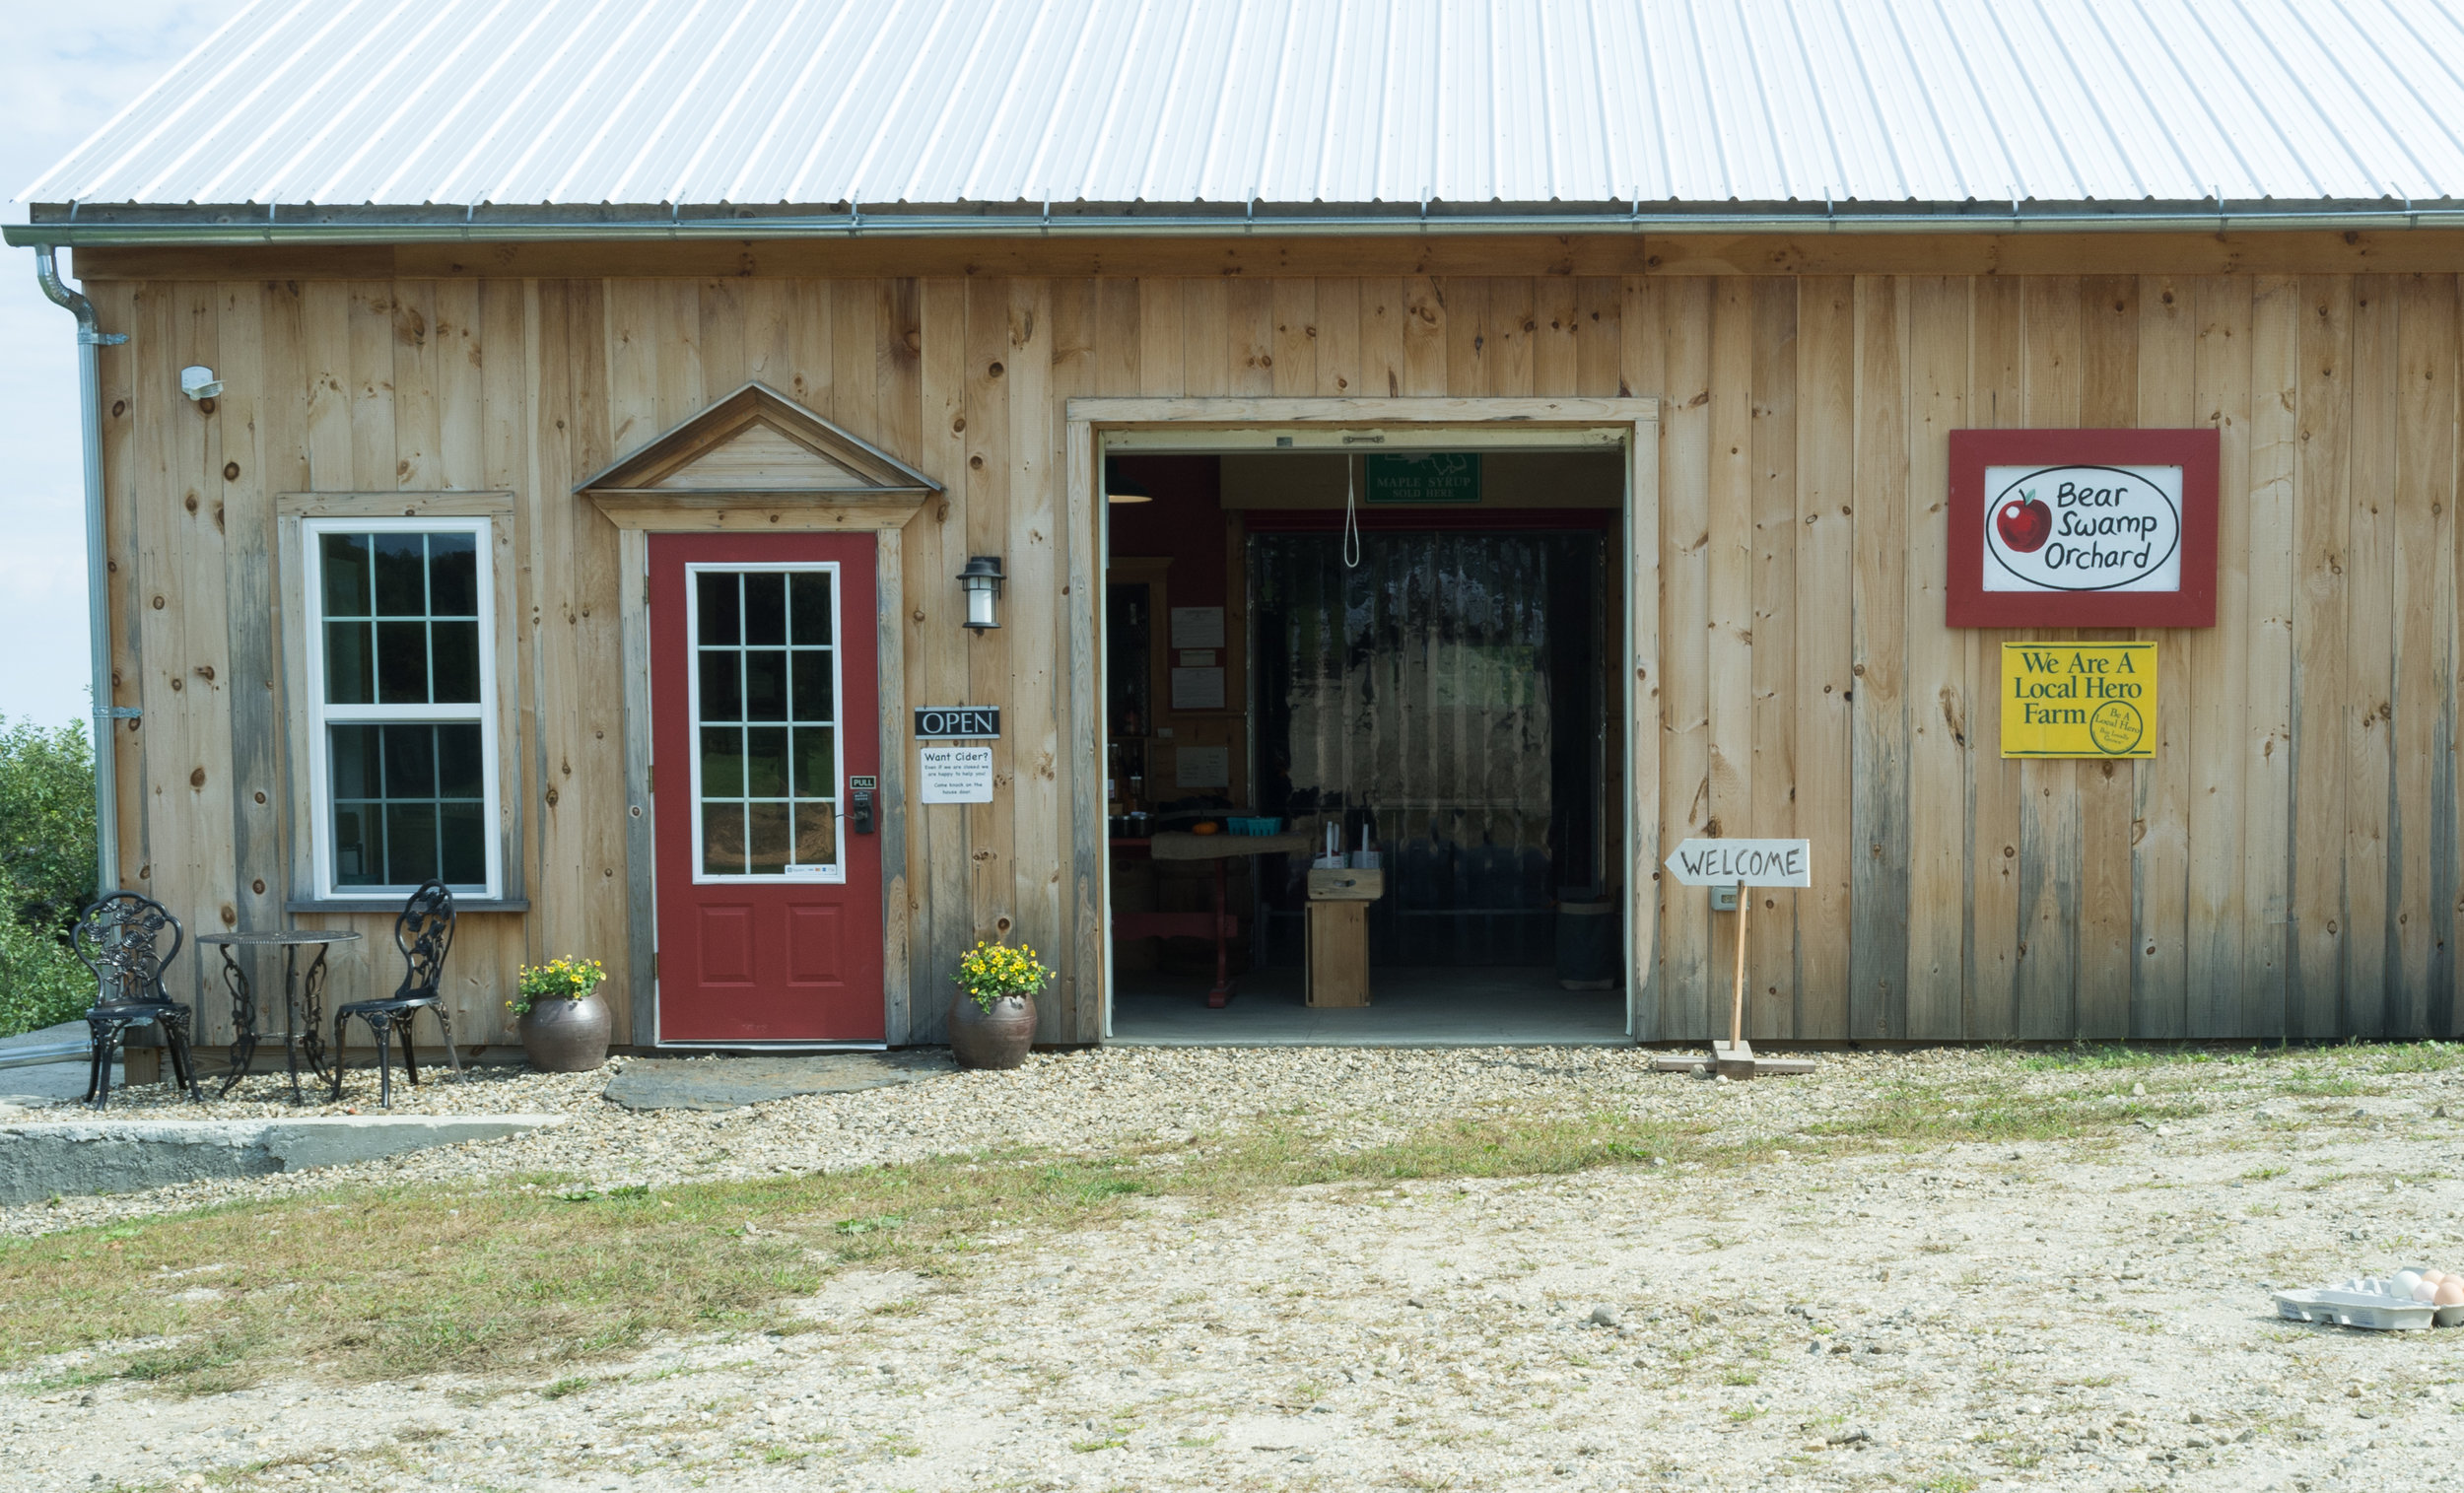 The cider tasting room and orchard welcome center.